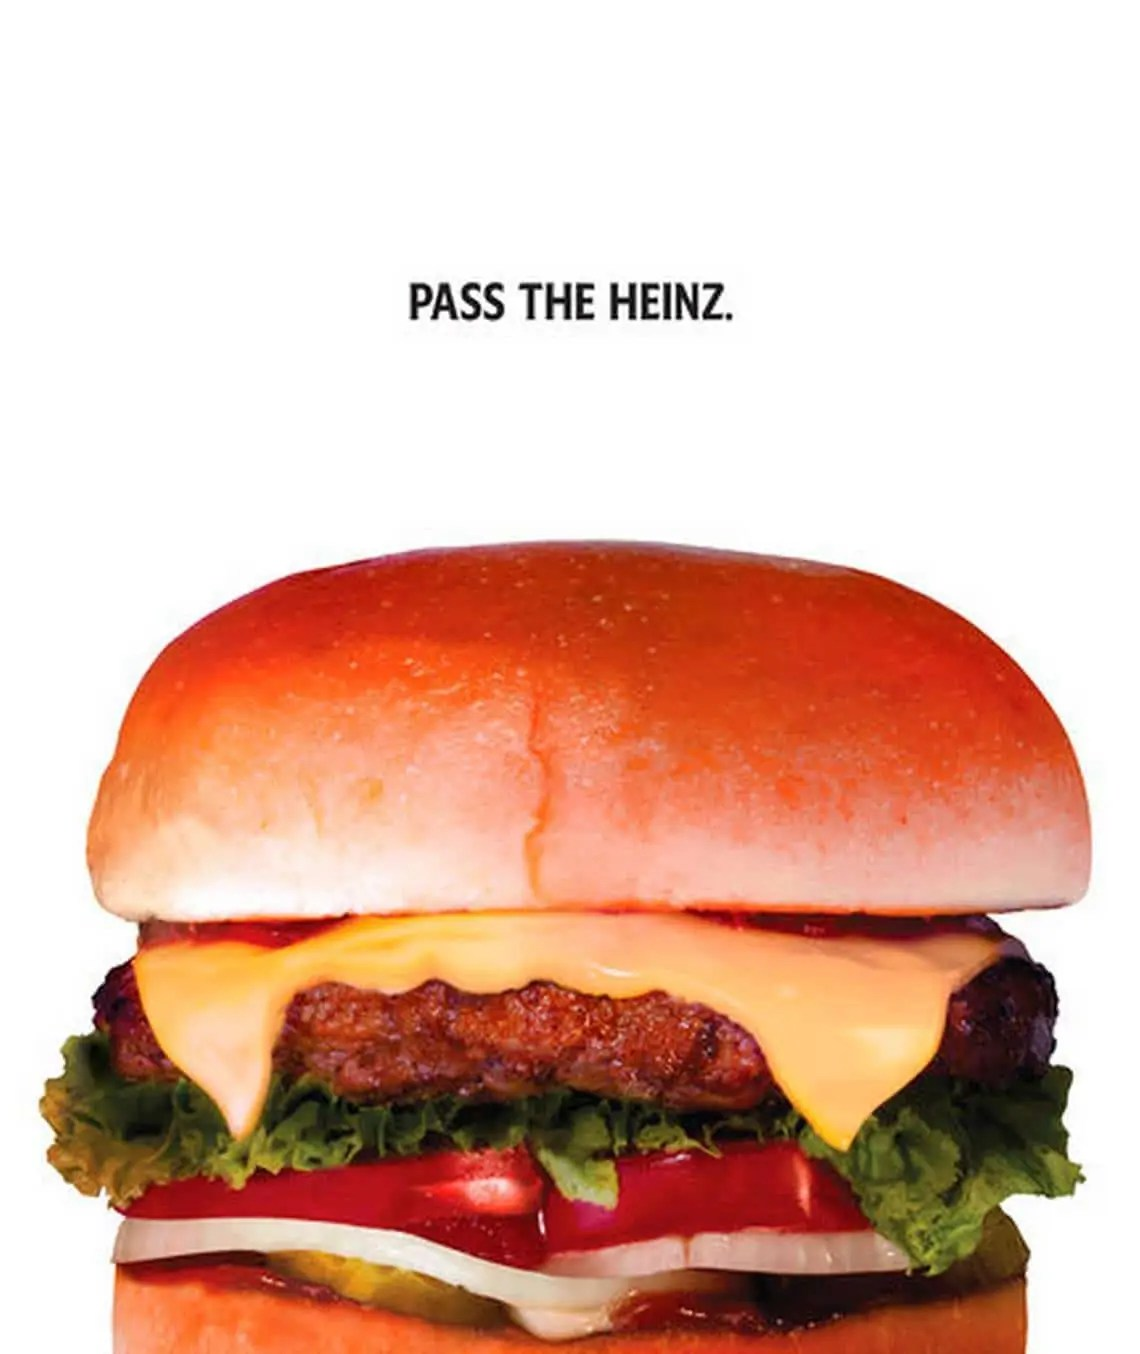 Pass-the-heinz